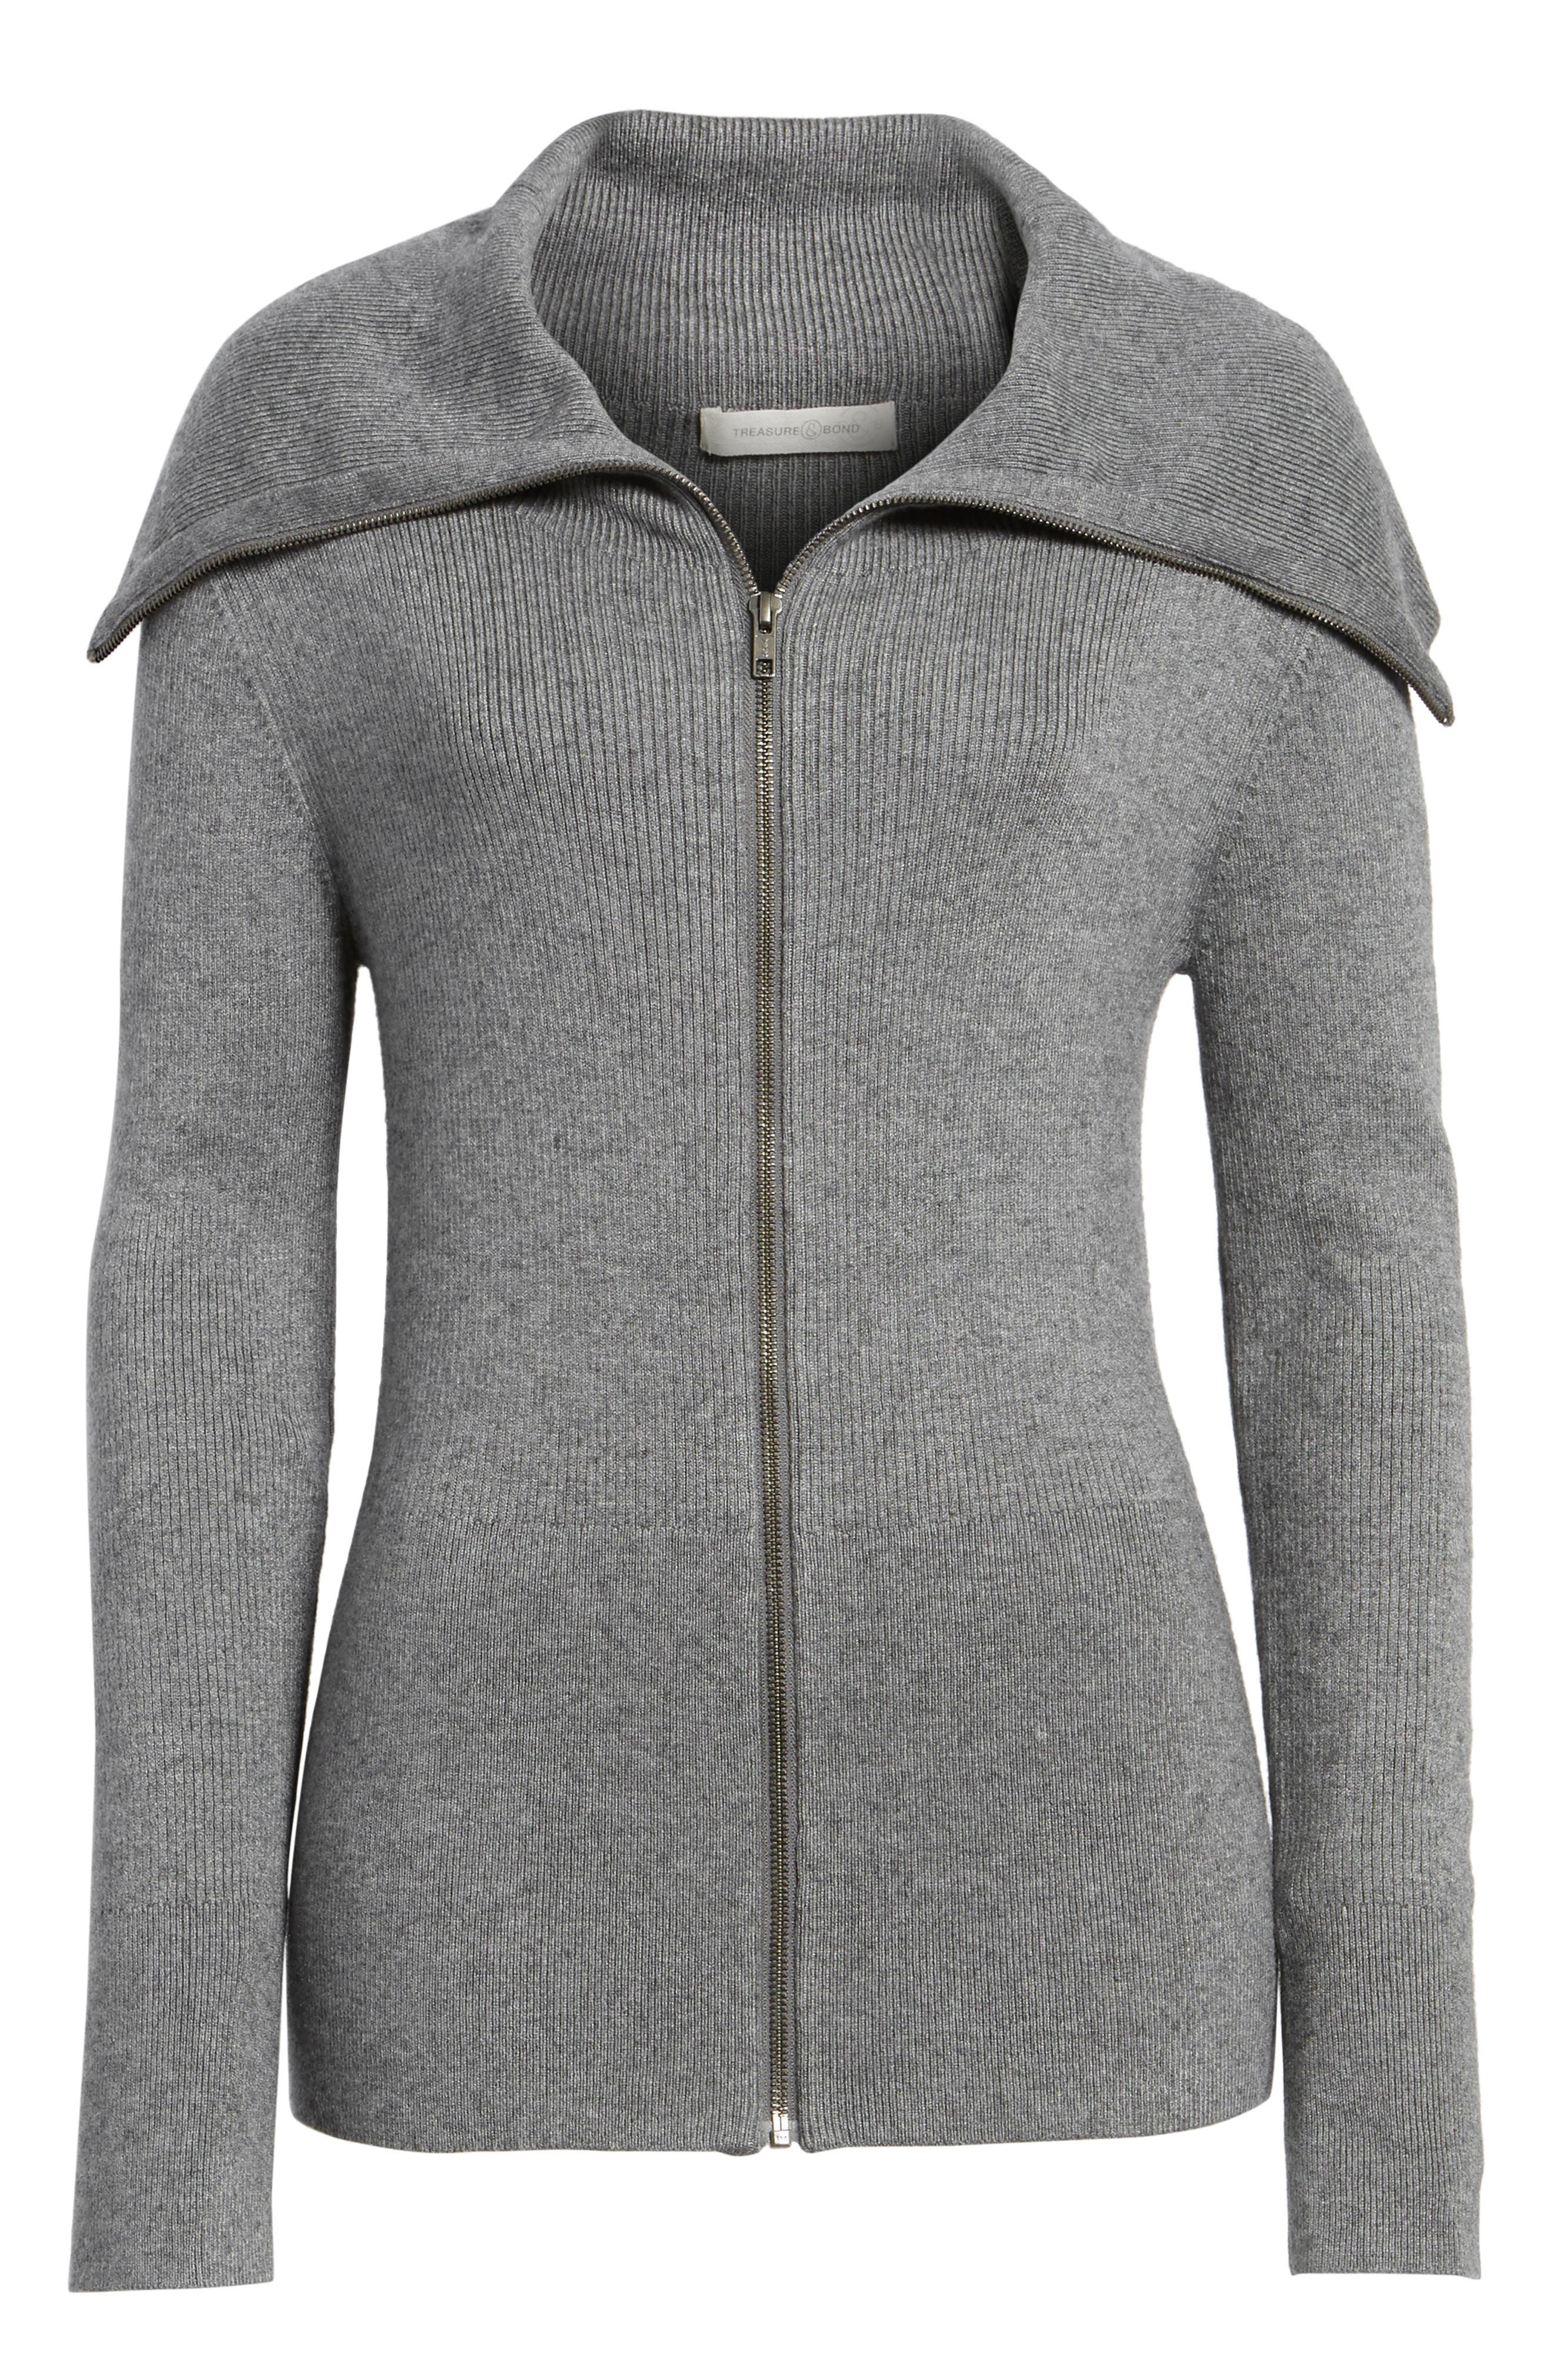 Wide Collar Zip Sweater,                             Alternate thumbnail 6, color,